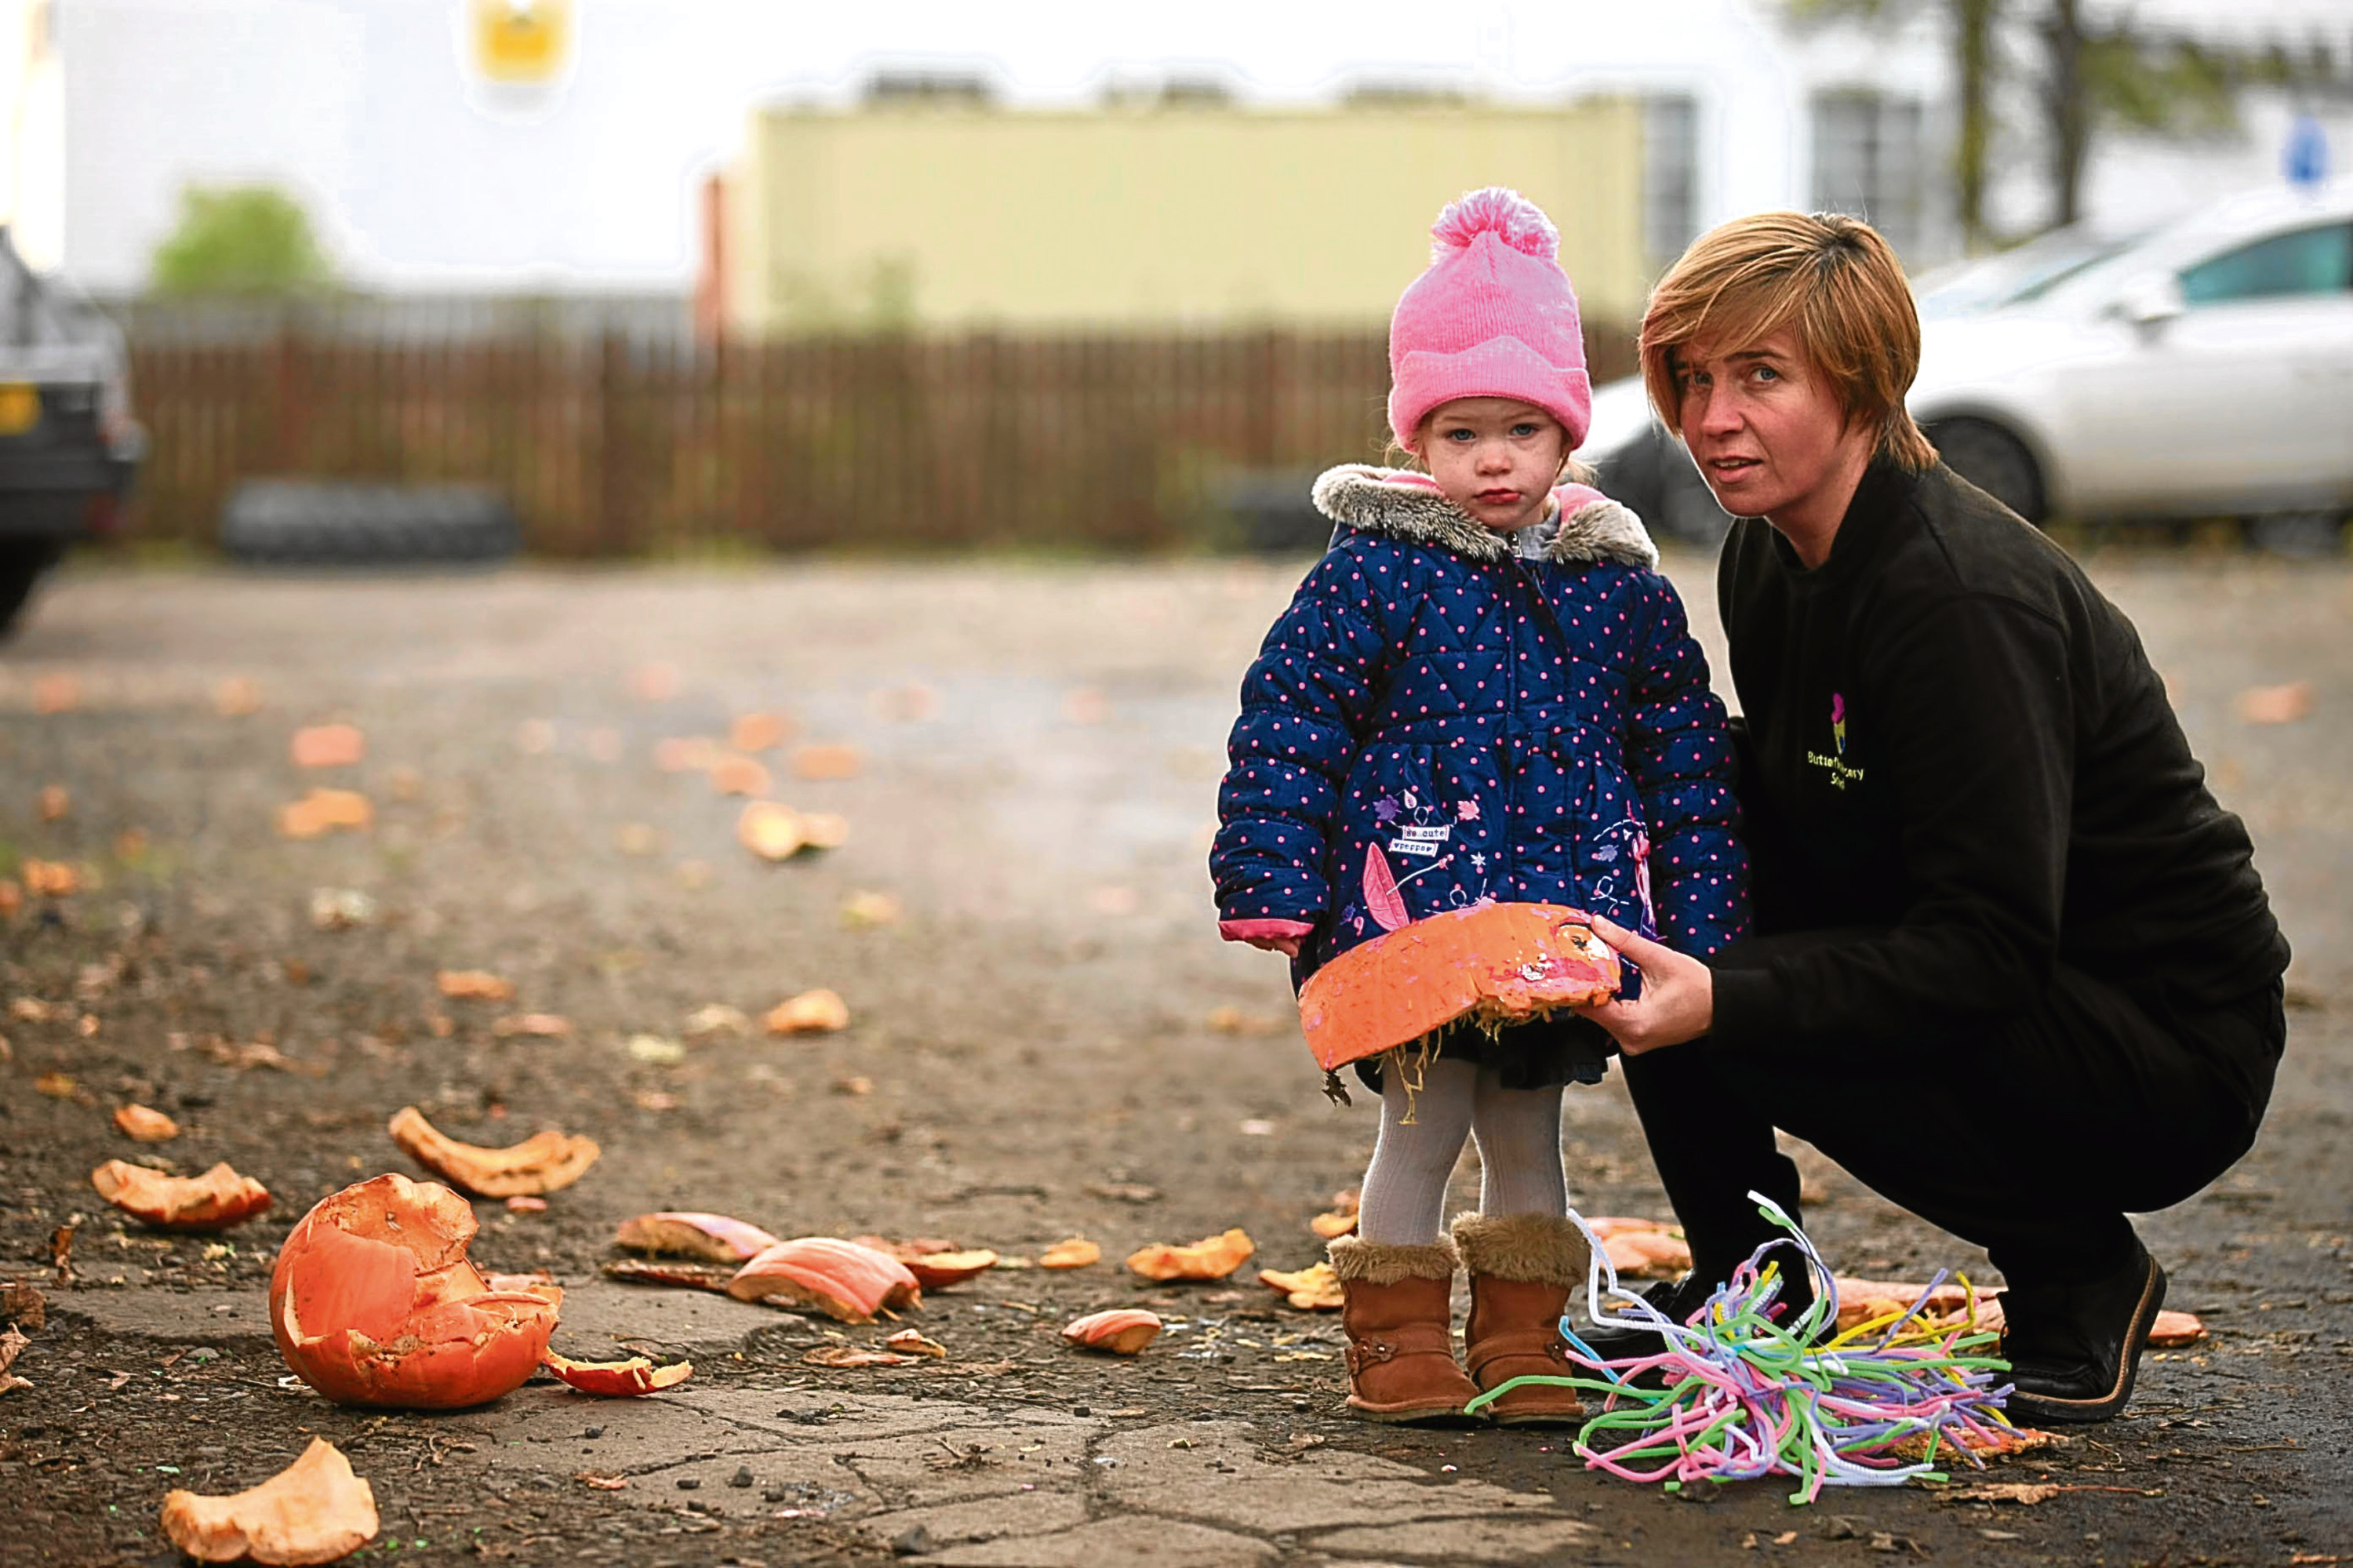 Two-year-old Teana McIntosh and Butterflies owner Teri Devine picking up the pieces at the nursery school.